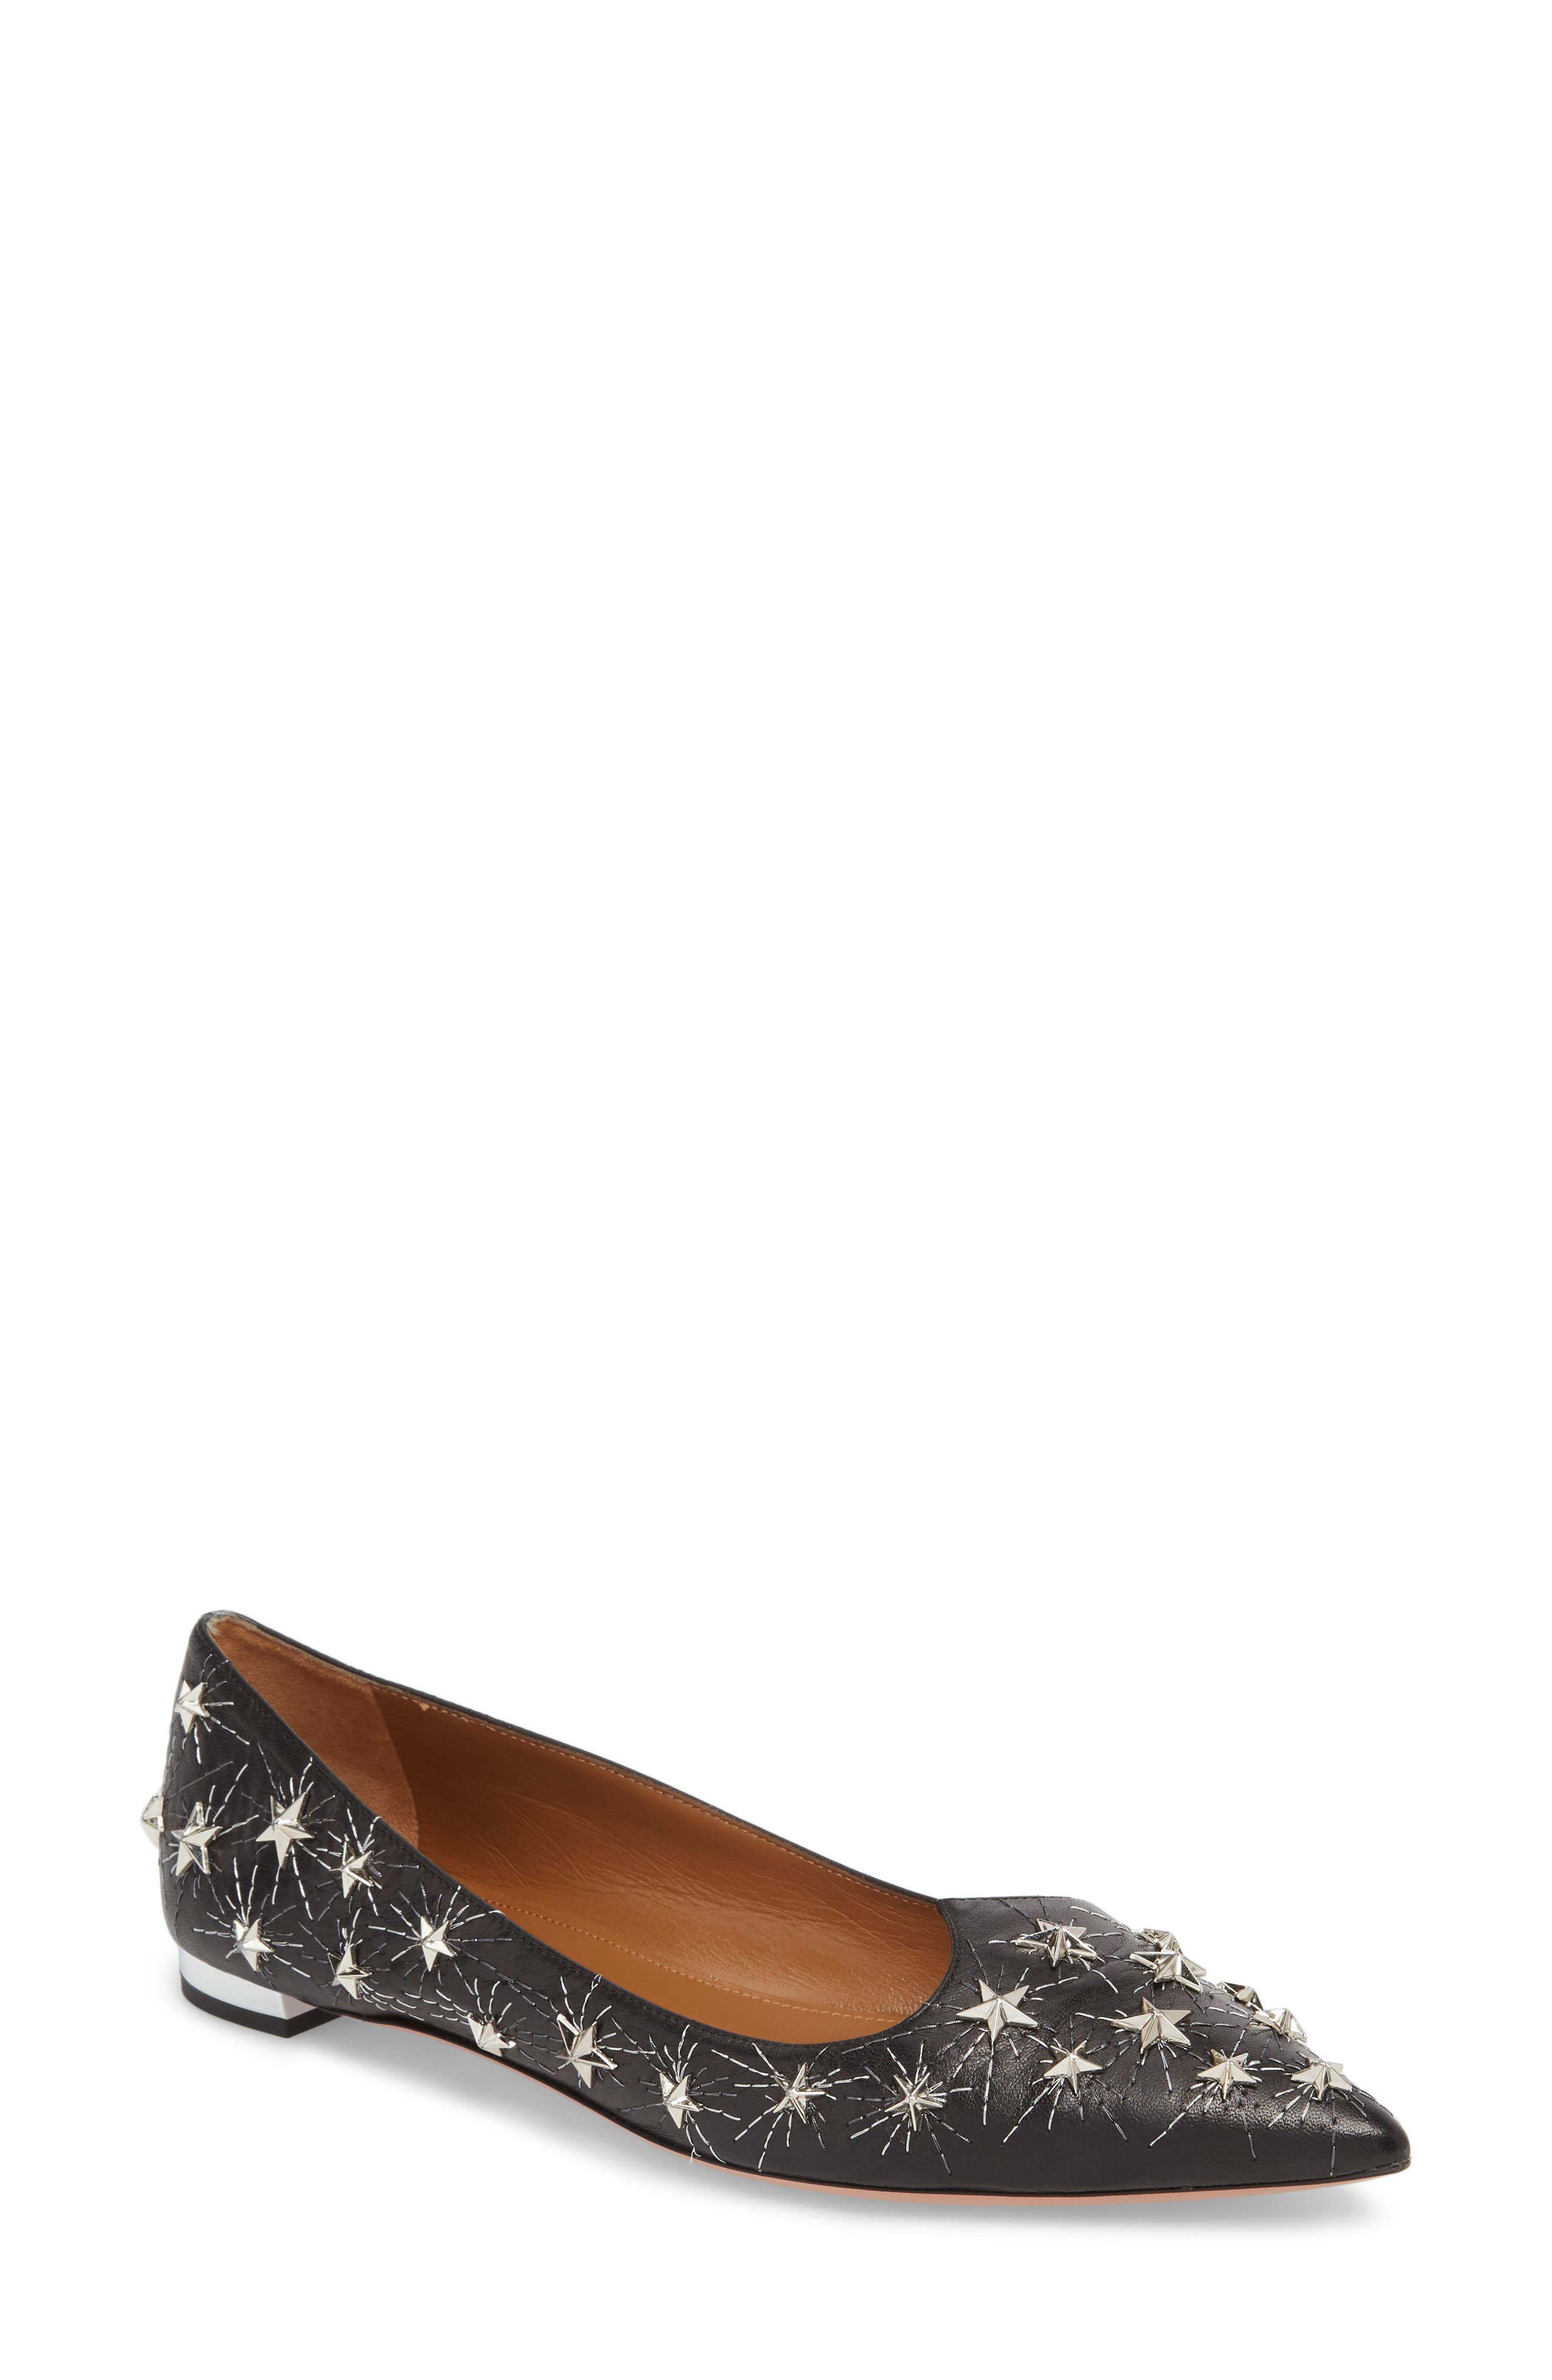 Cosmic Star Pointy Toe Flat,                         Main,                         color, 001